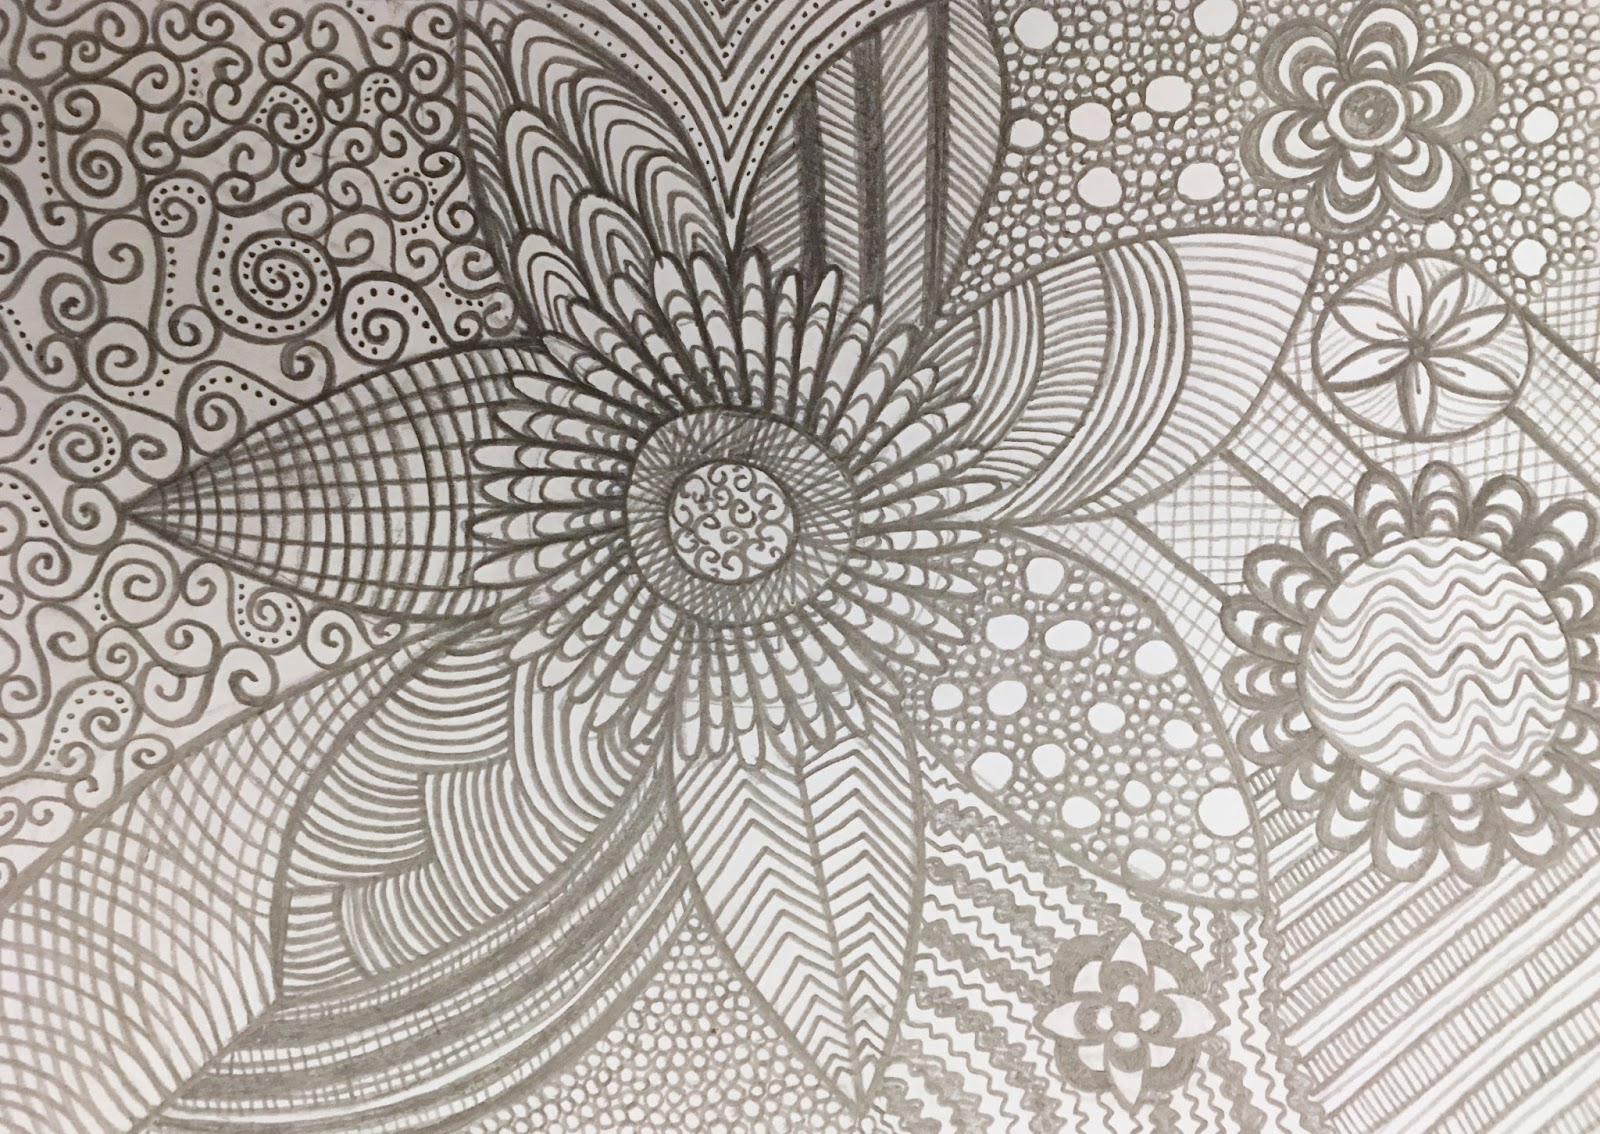 Learning To Tangle Zentangle Inspired Doodle Art